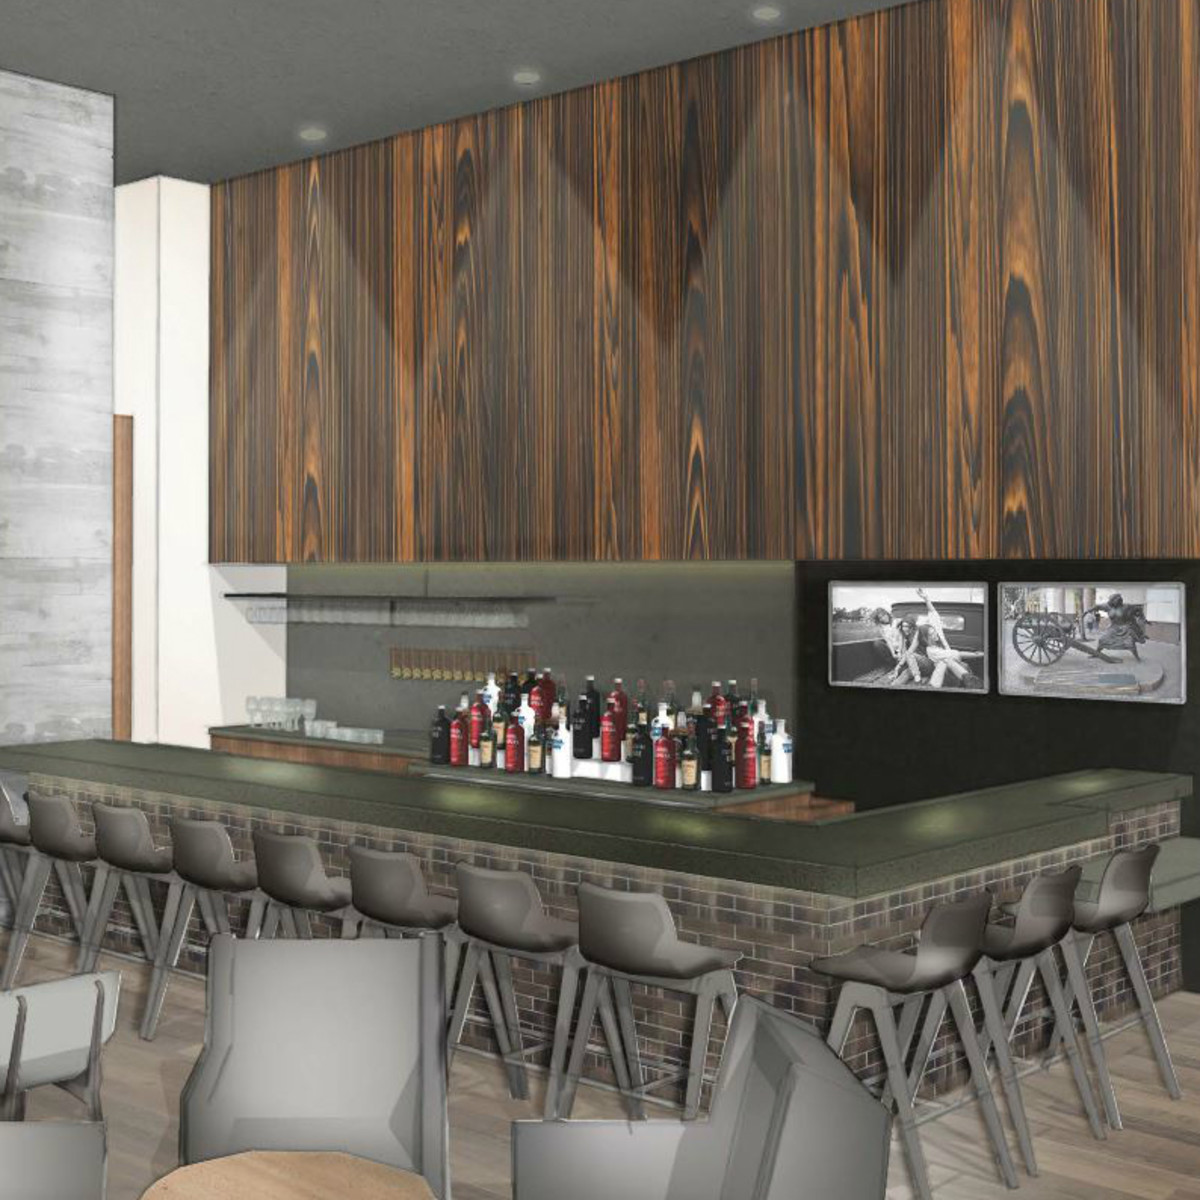 Hilton Austin downtown hotel 2016 renovation rendering bar Cannon + Belle